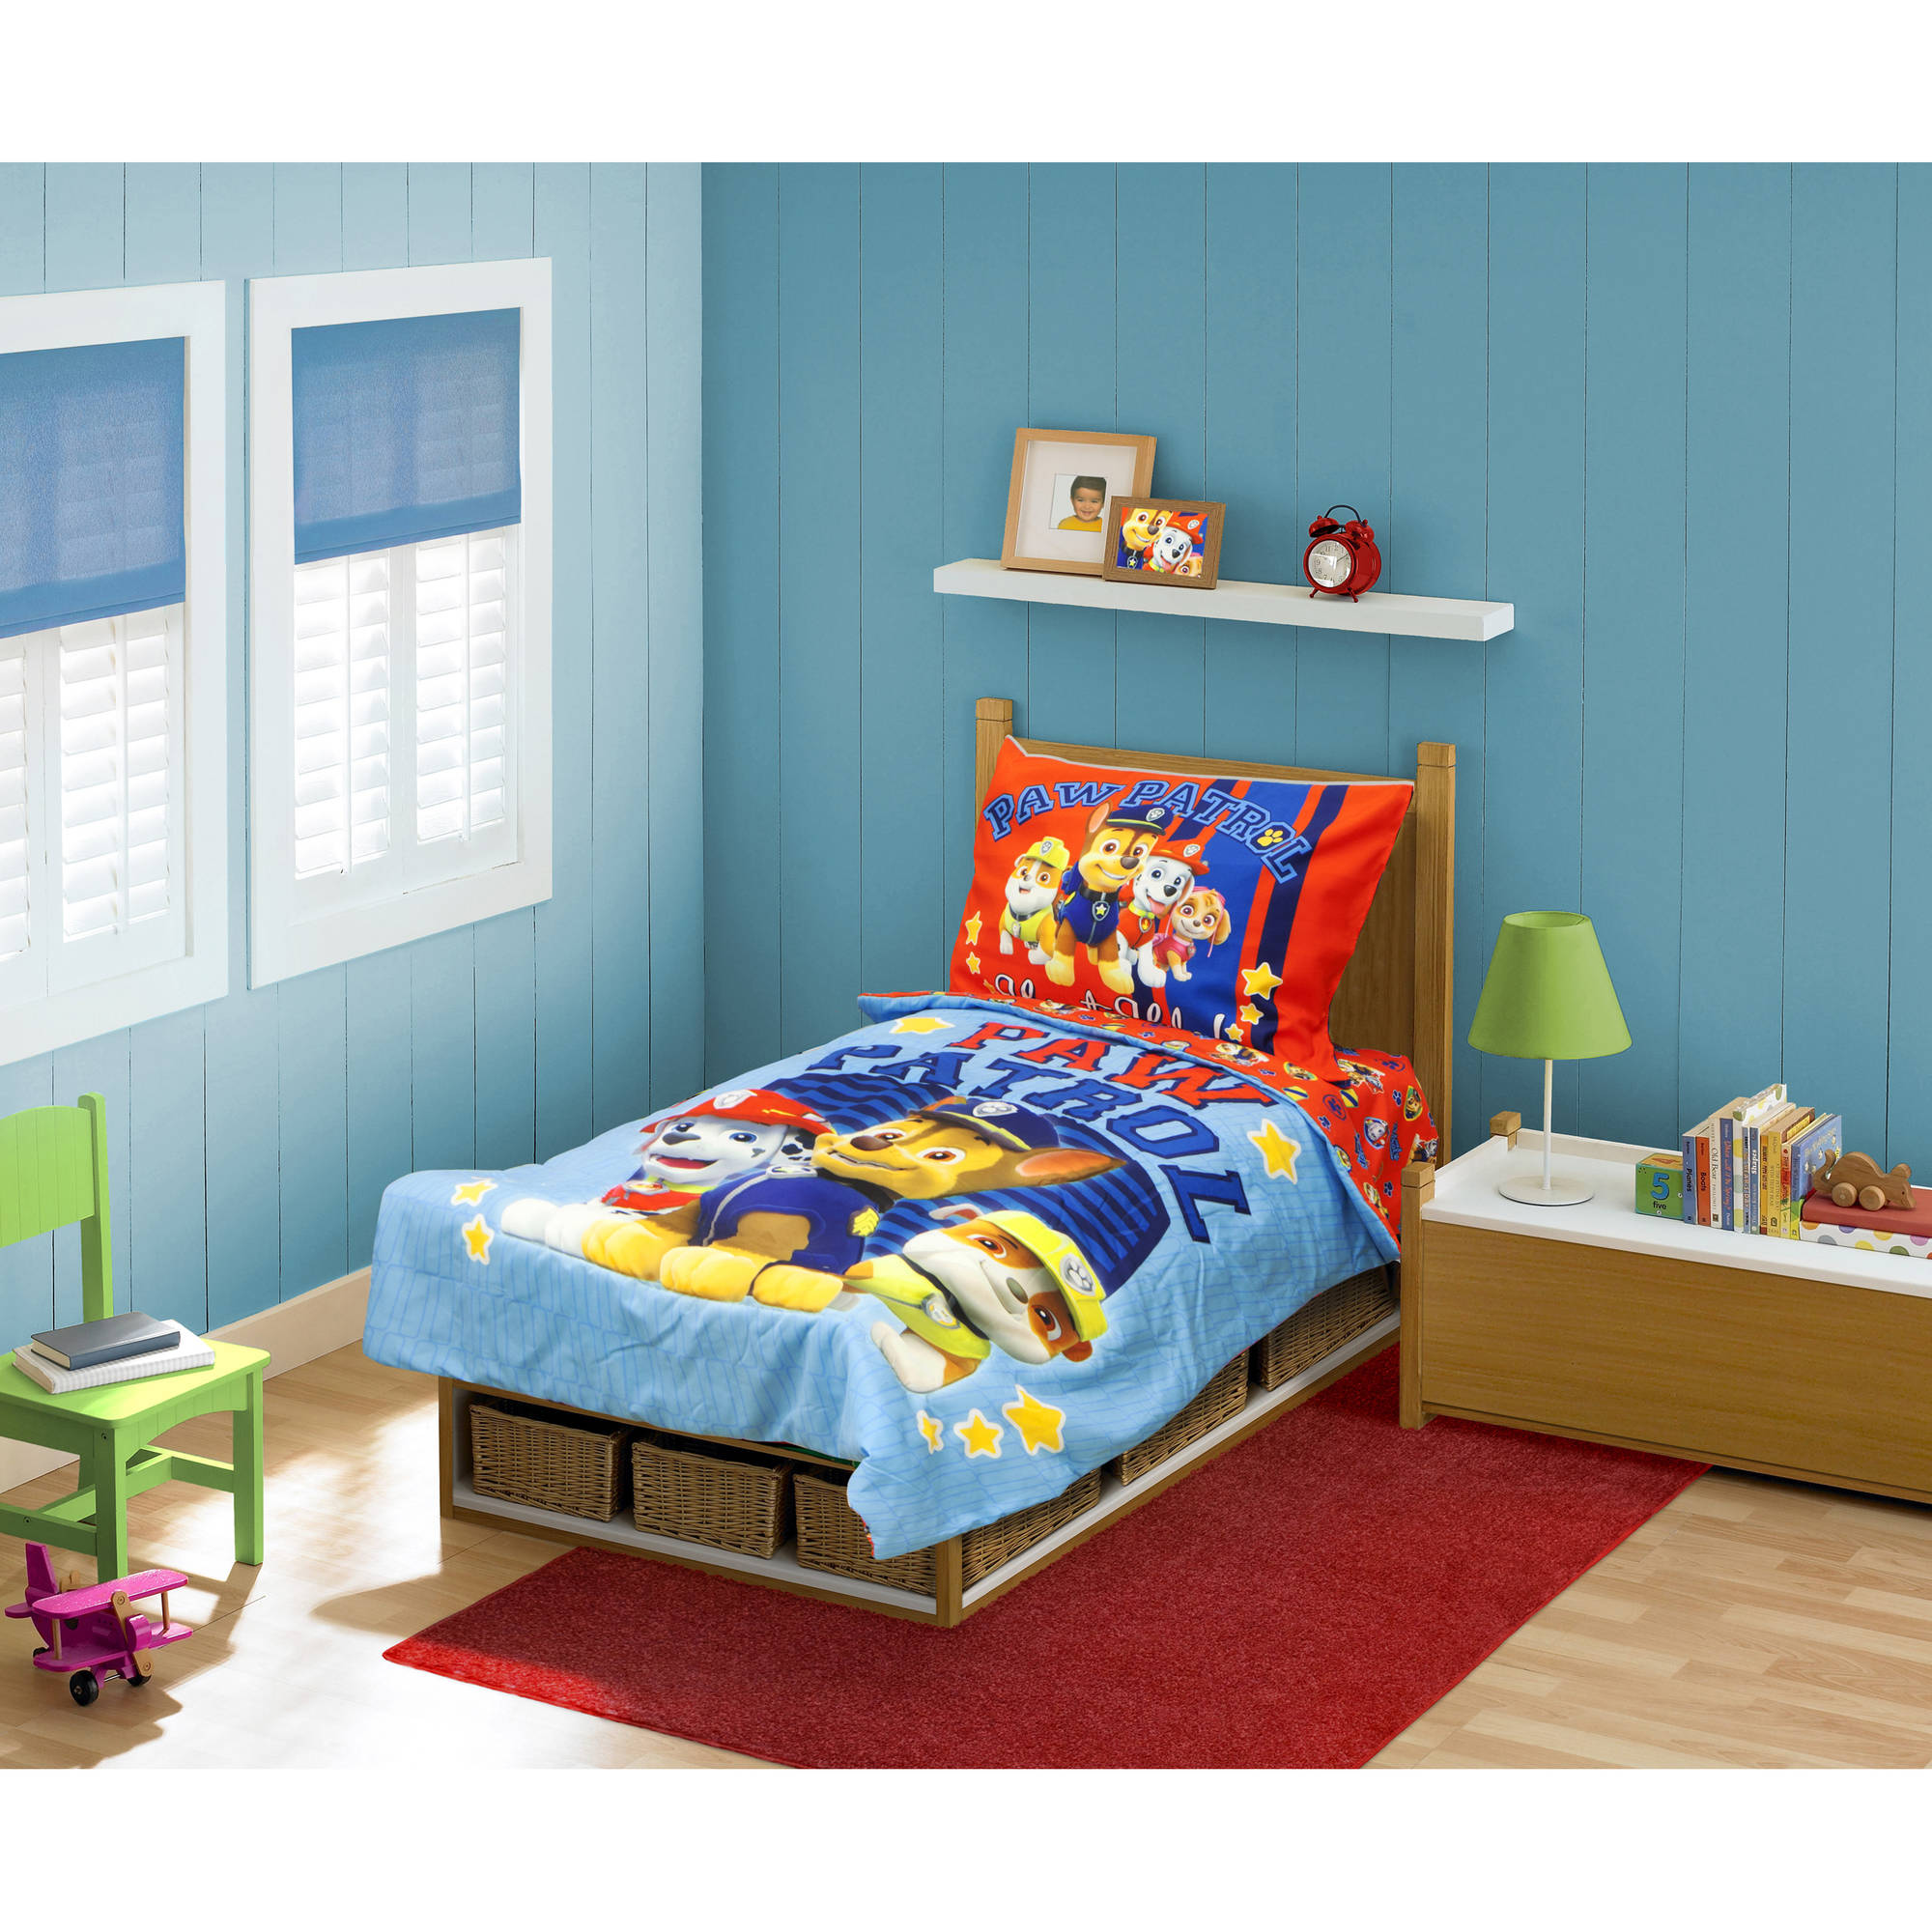 BabyBoom Nick Jr PAW Patrol 4 Piece Toddler Bedding Set Here To Help    Walmart.com